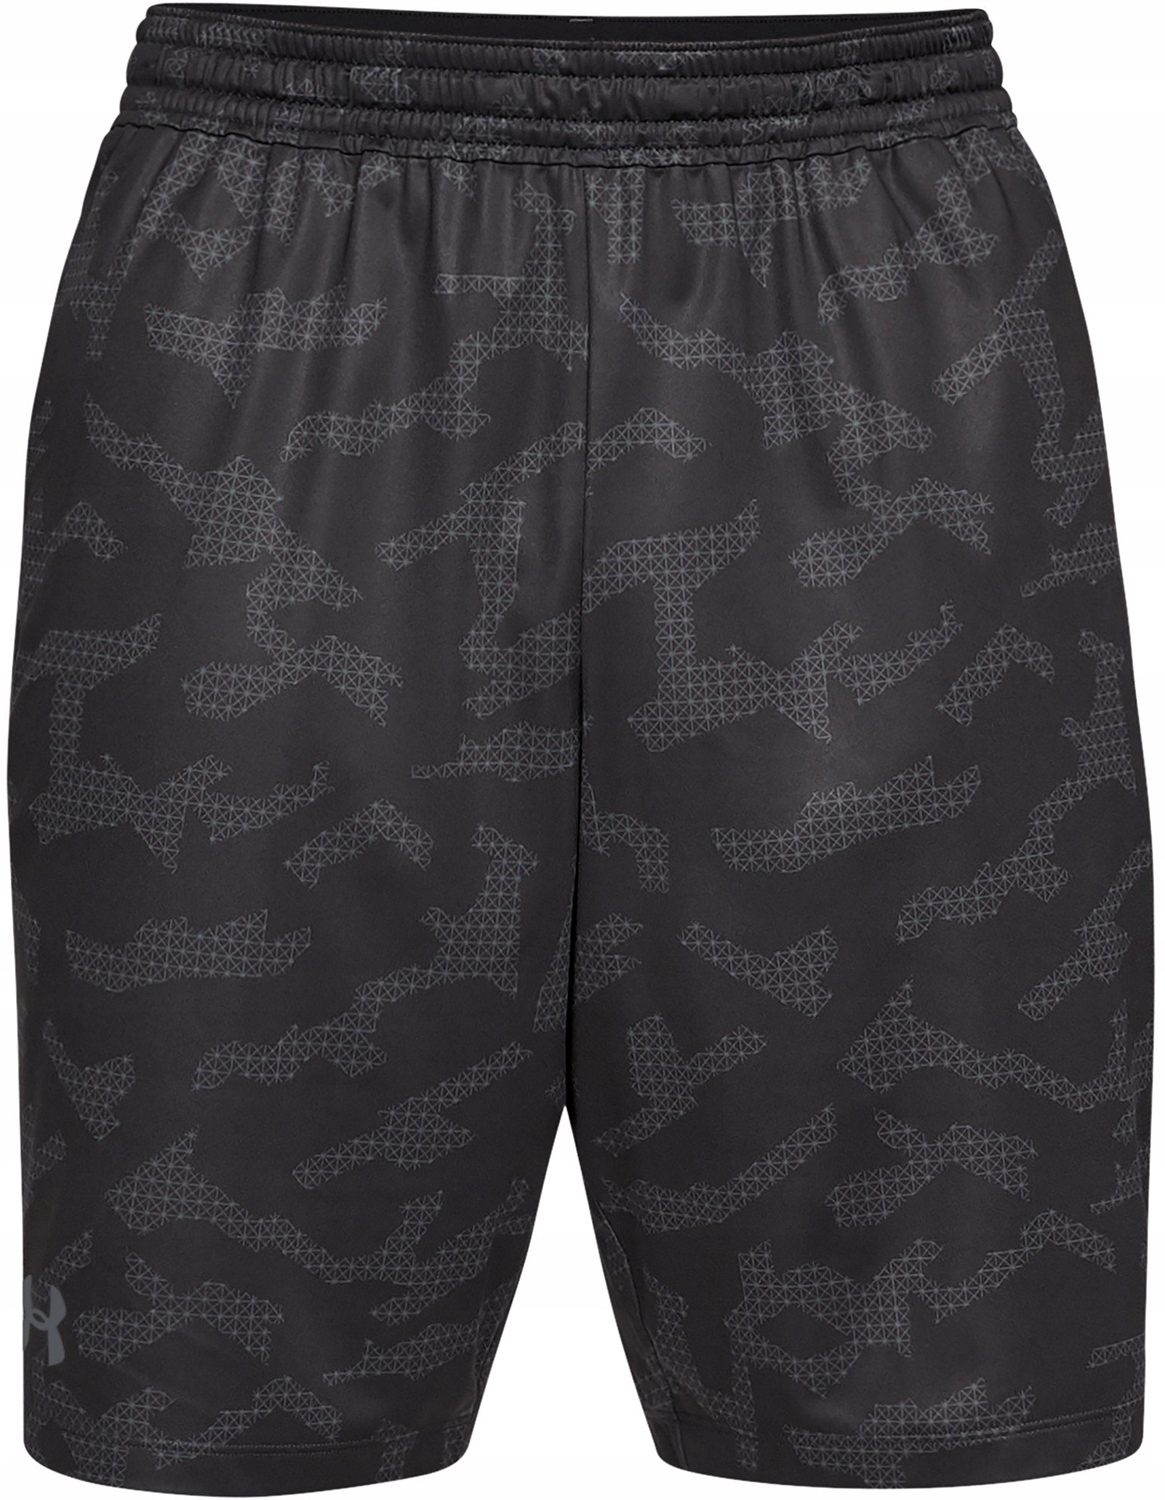 Spodenki Under Armour MK1 Shorts Printed Grey # L